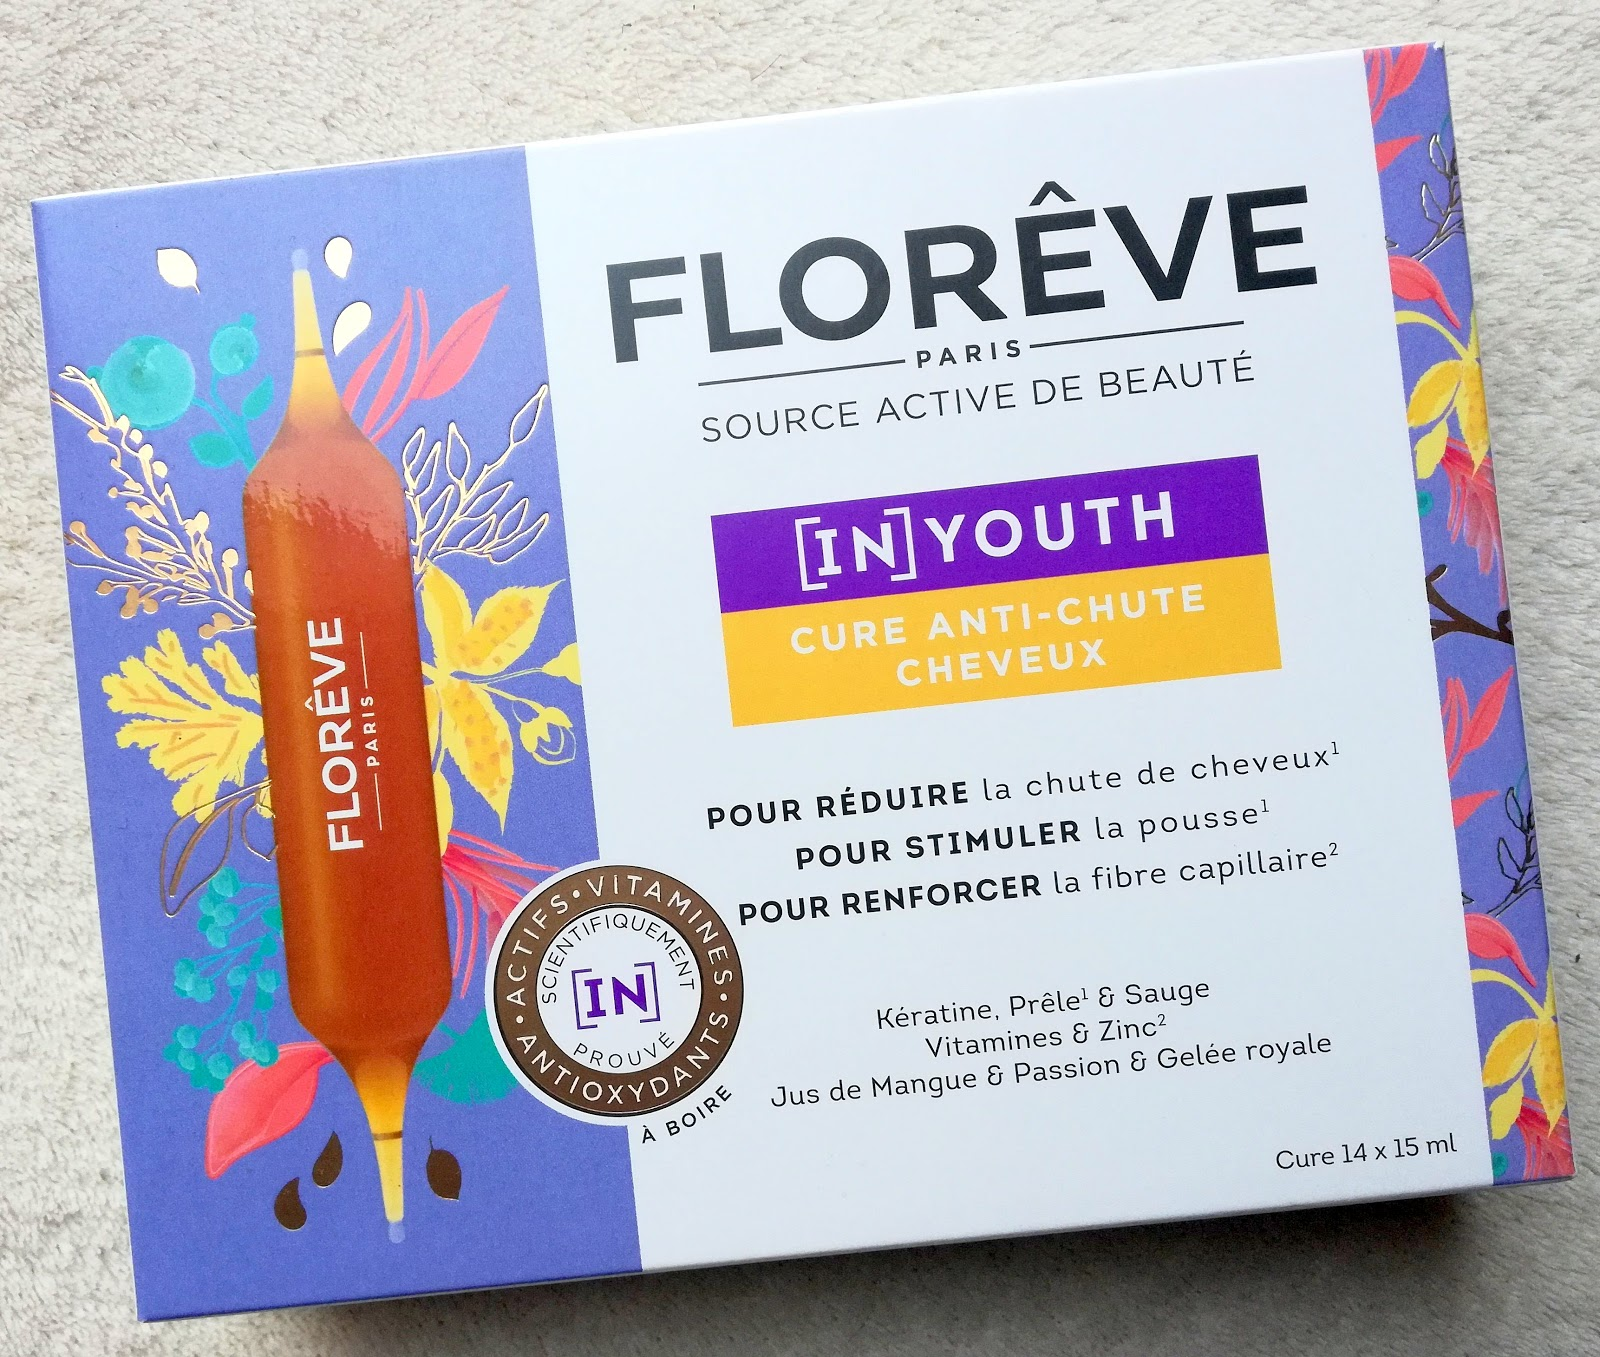 [IN] YOUTH Cure Anti-Chute Cheveux Florêve Paris